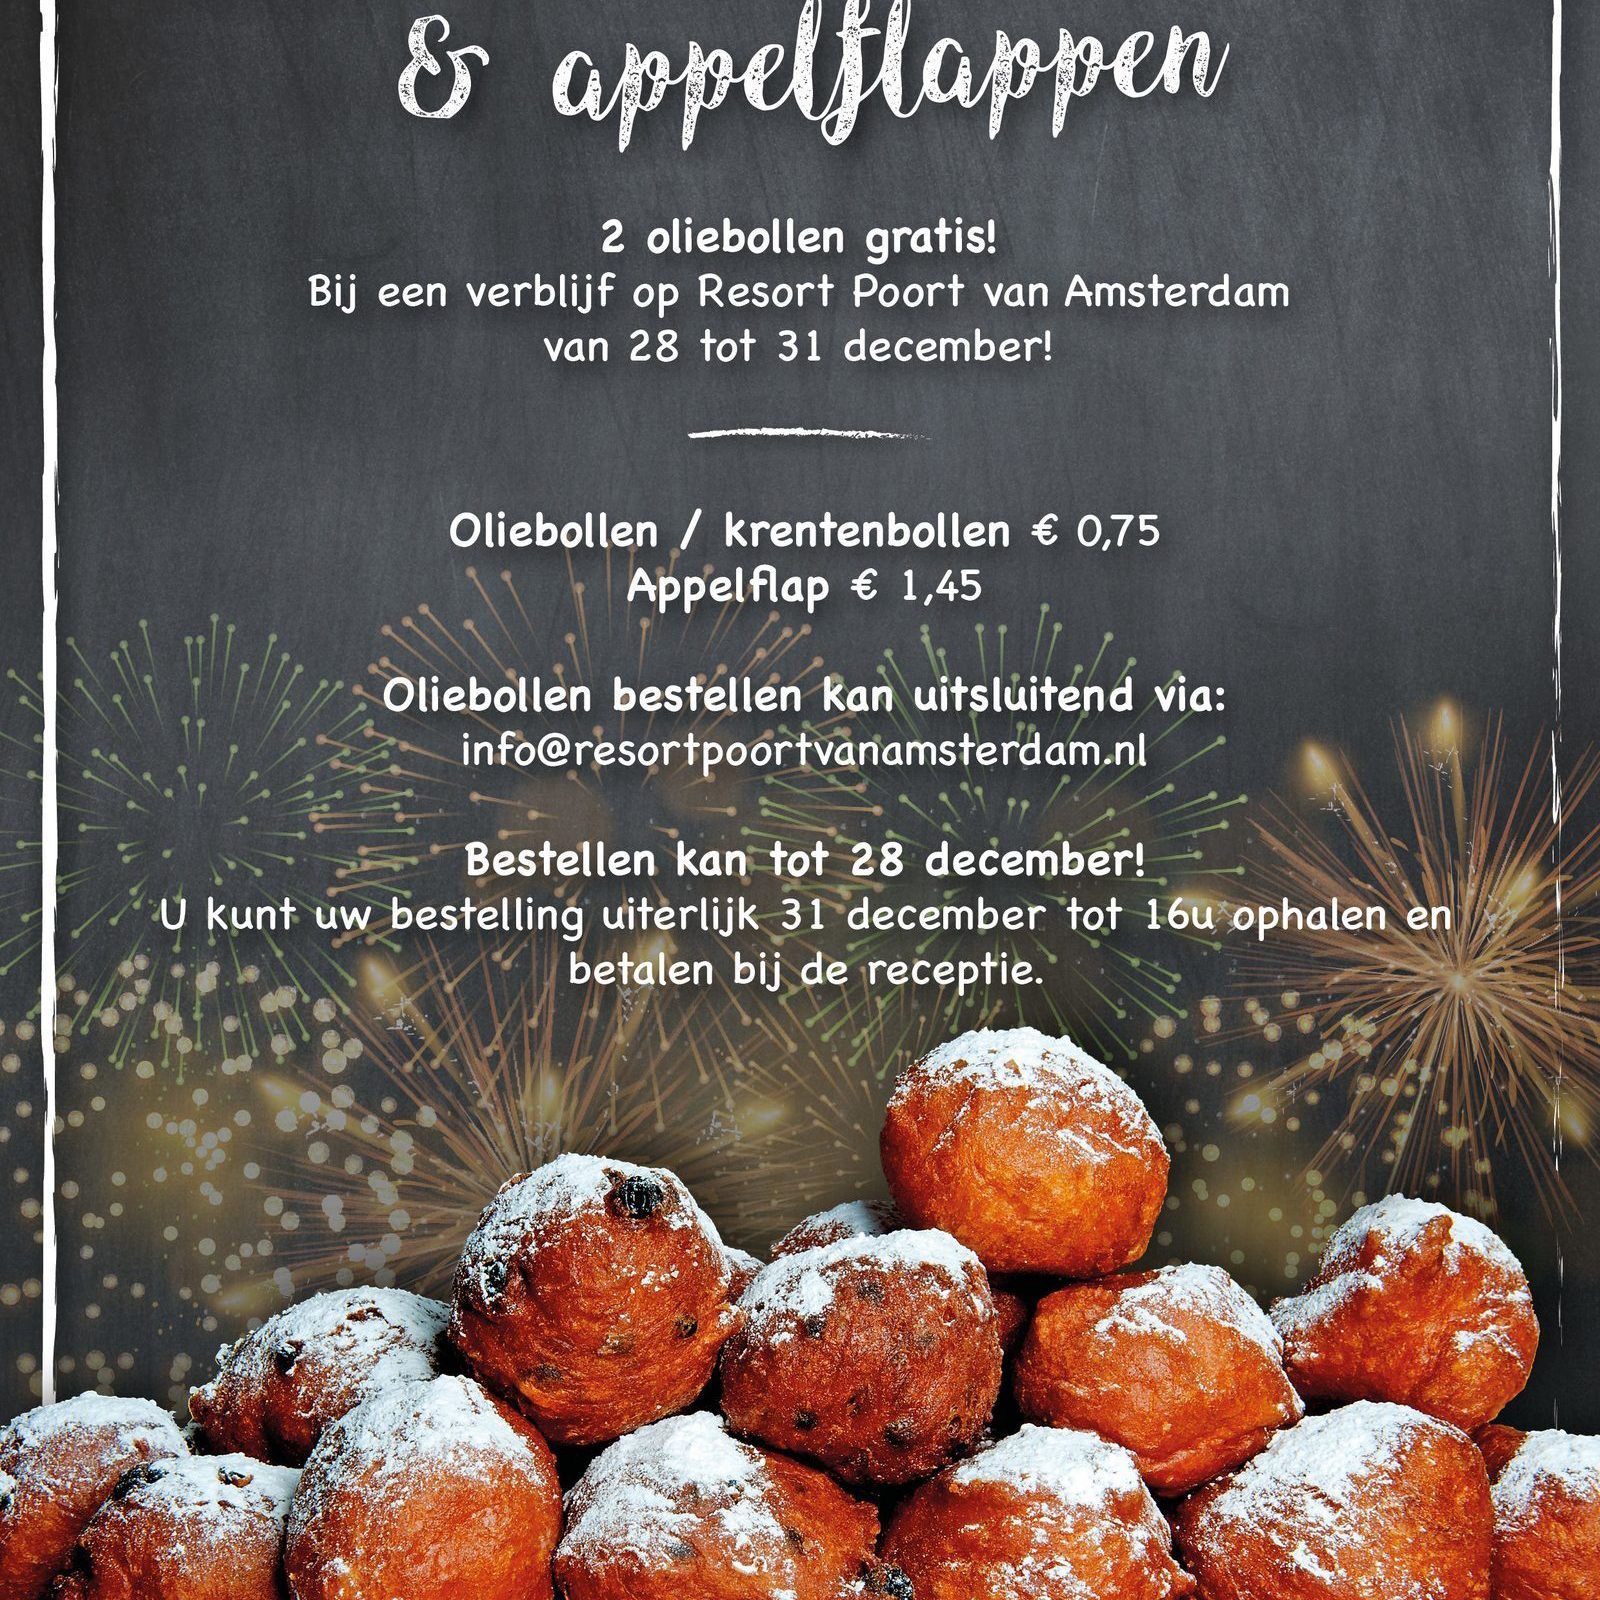 Oliebollen, currant buns and appelflappen for sale!